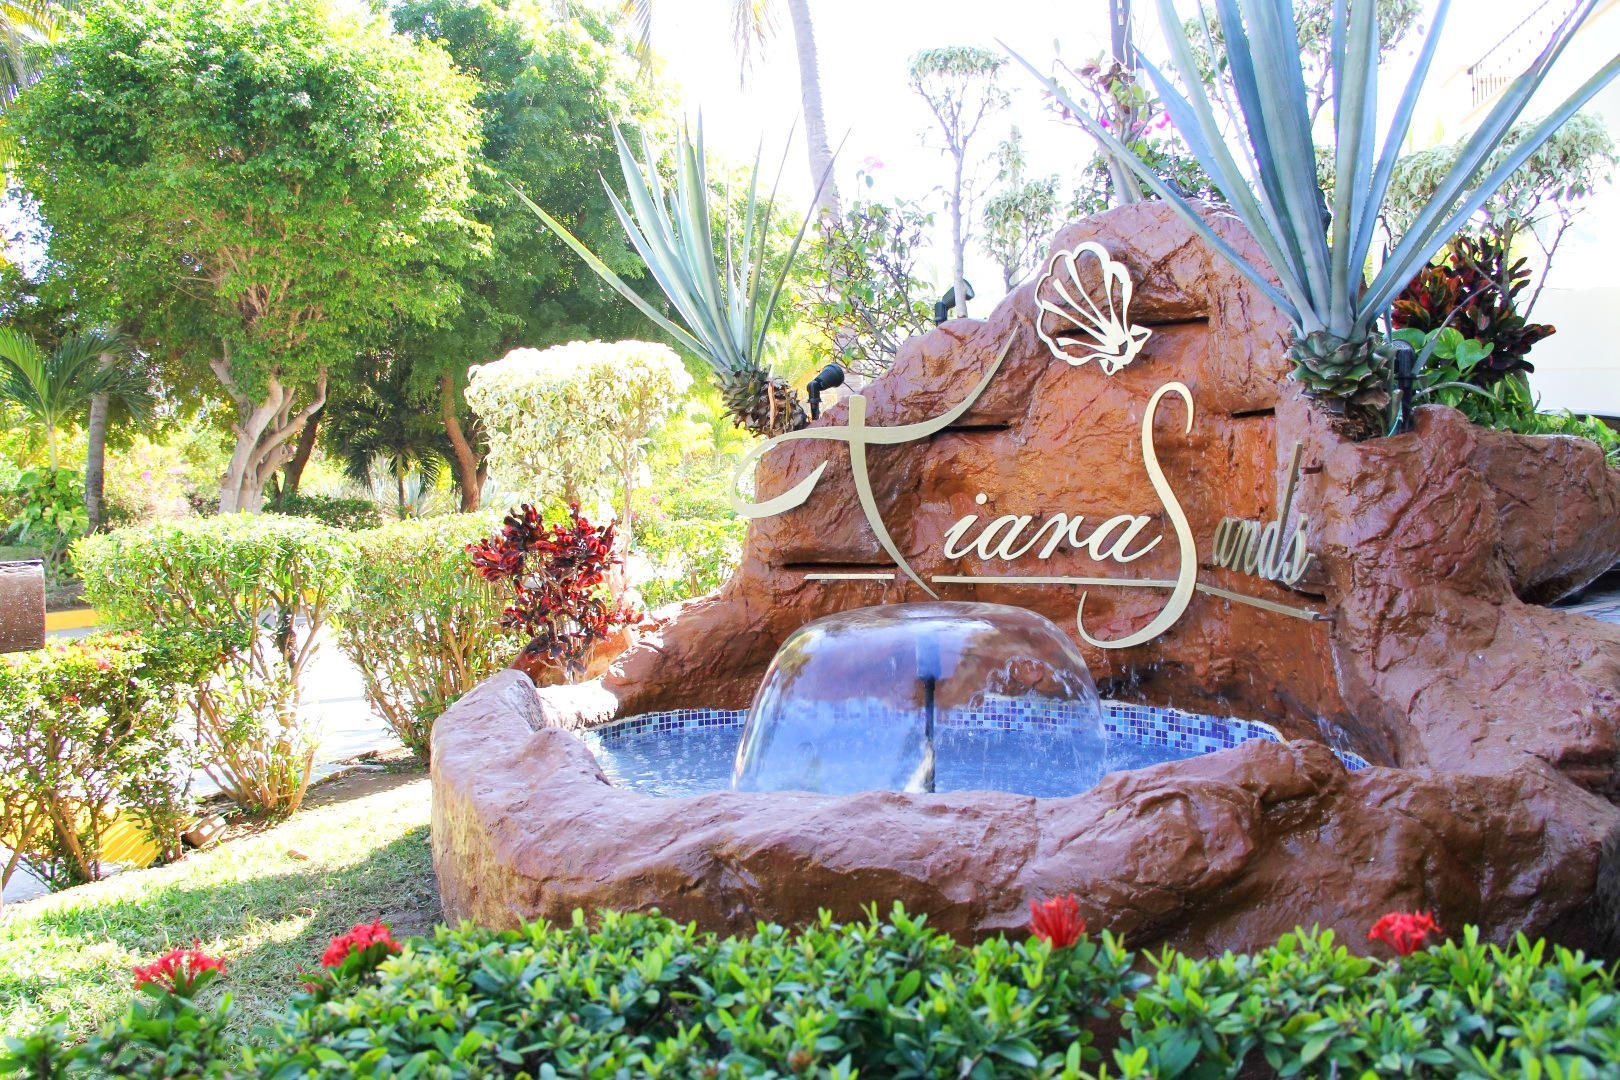 Tiara Sands entrance.